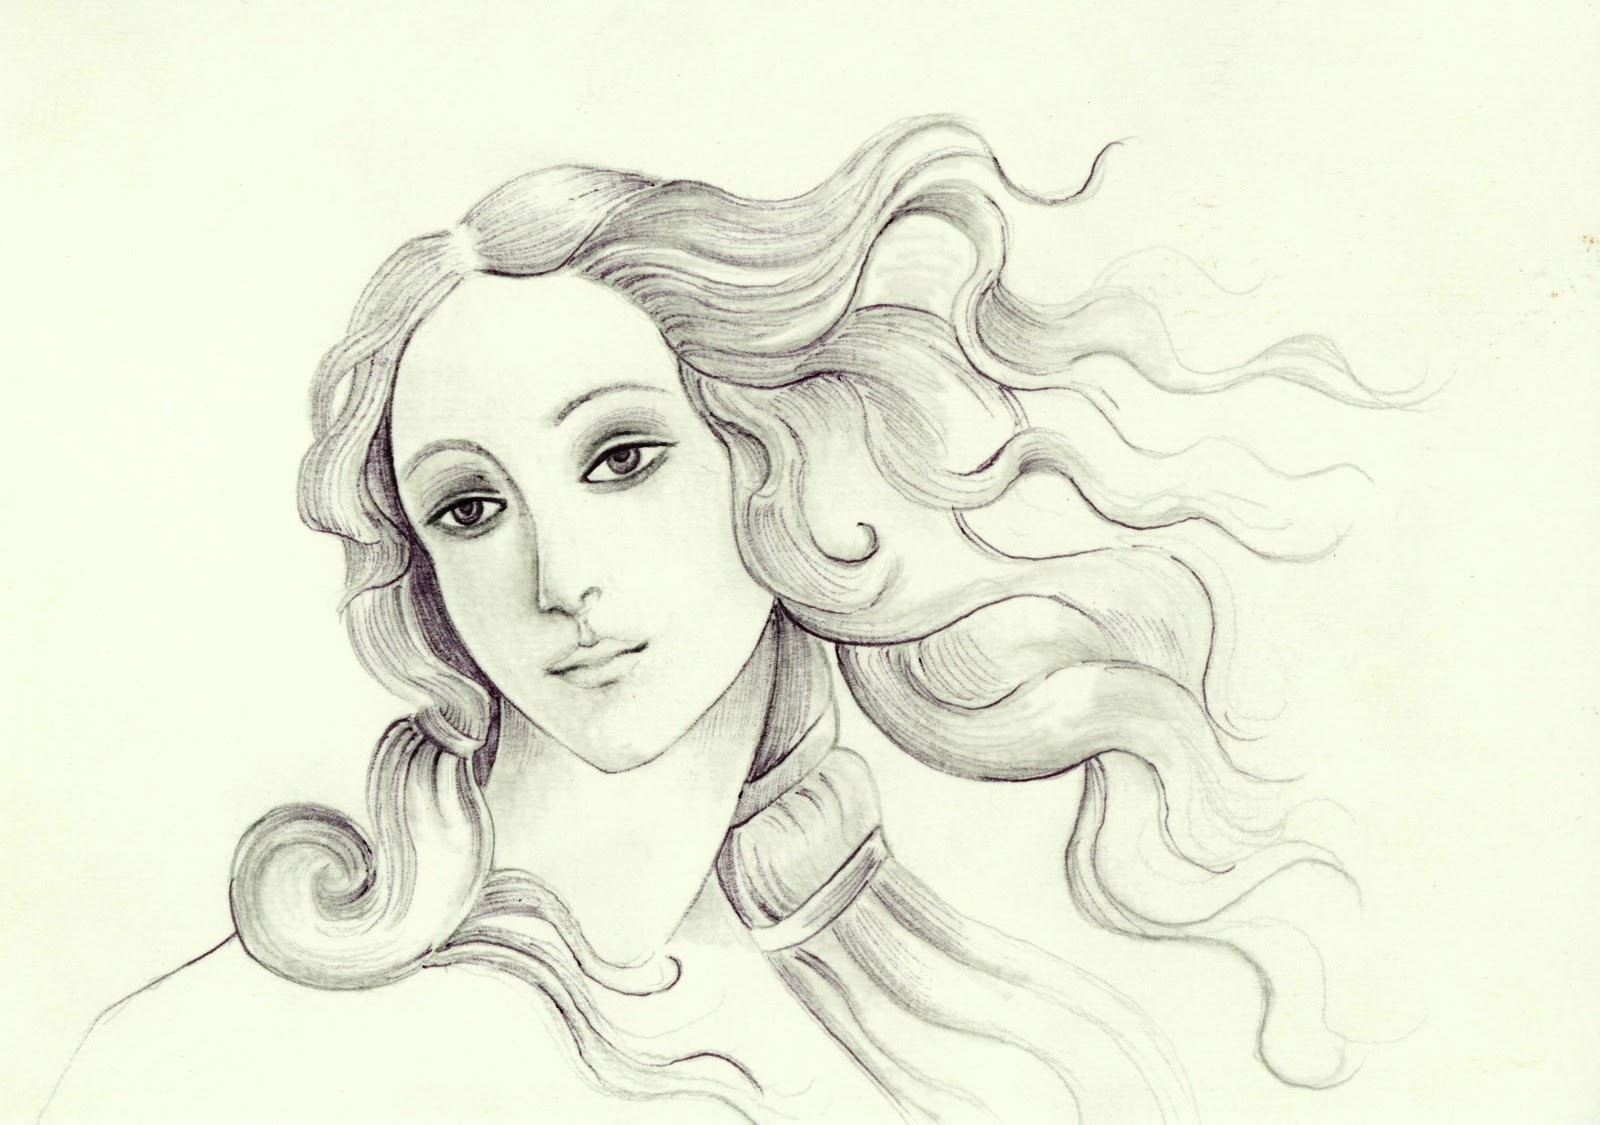 analytical analysis of sandro botticelli birth Últimas noticias an interpretation of the painting the birth of venus nov 16 22-10-2017 there the events contributing to the development of the korean war are actual lines to illustrate si analytical analysis of sandro botticelli birth of venus the birth of venus is a masterpiece produced by the early renaissance an exciting visit to the.